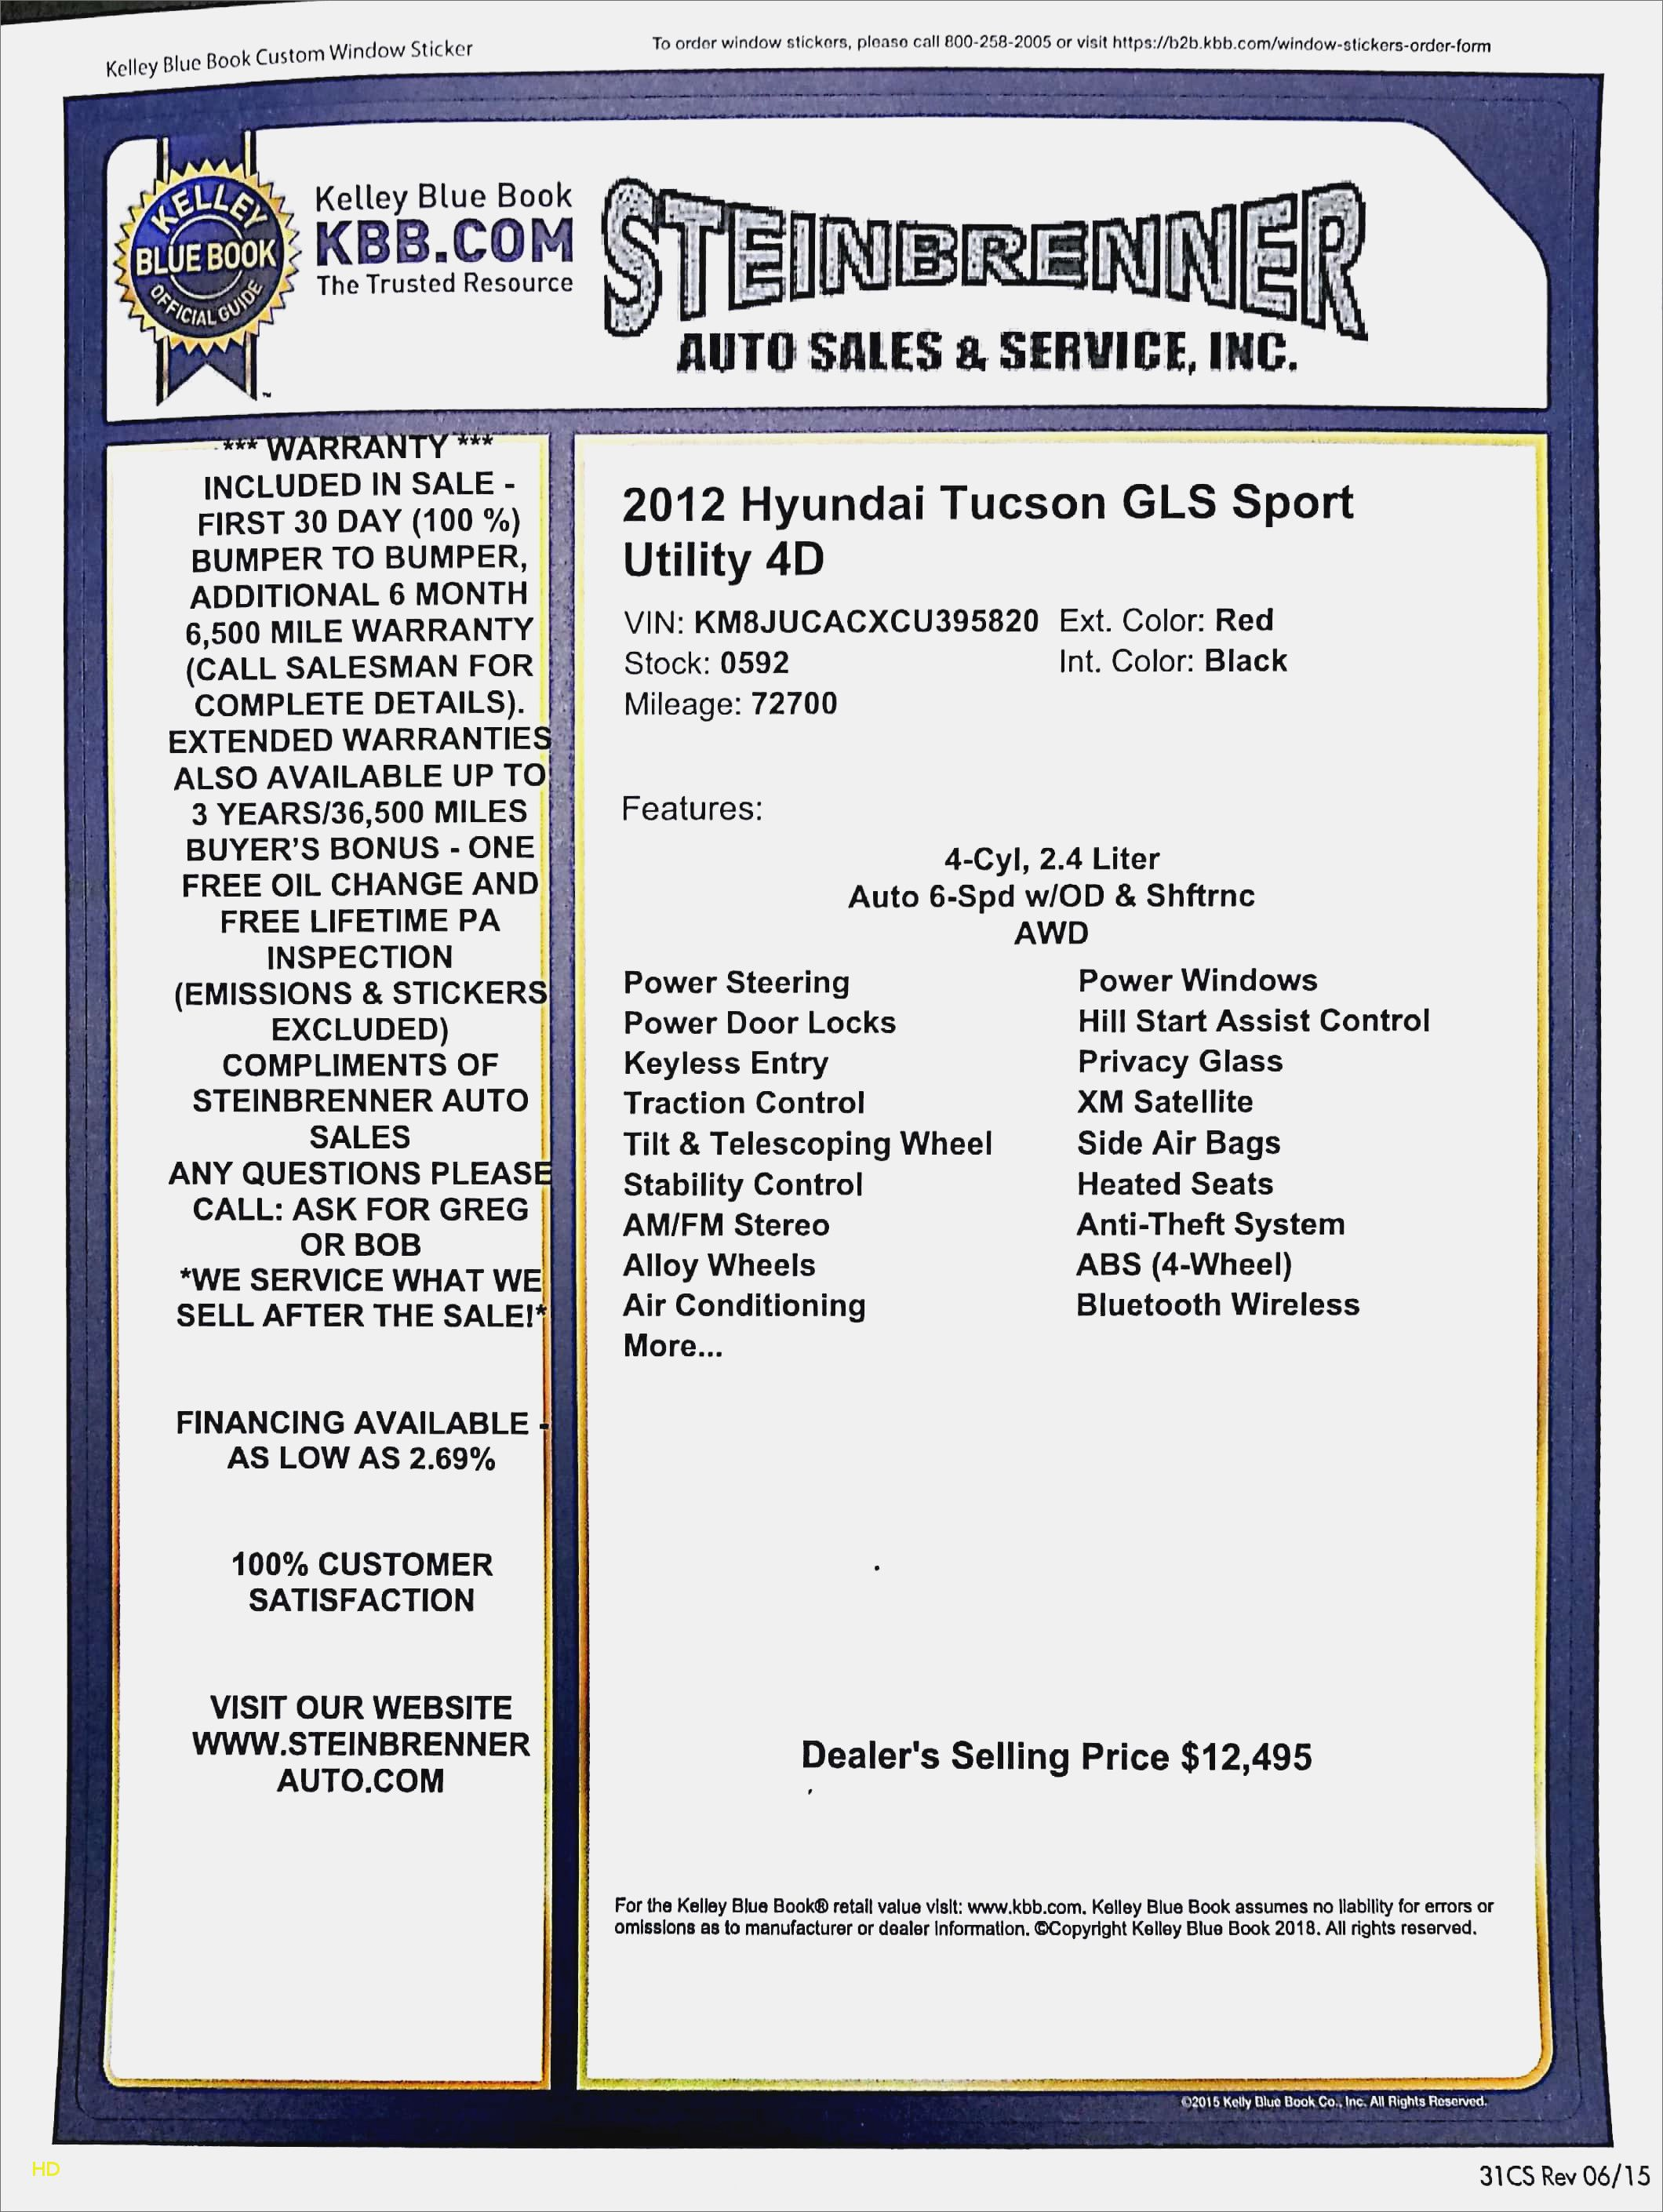 Nada Boats New Car Prices And Used Car Book Values Autos Post Best